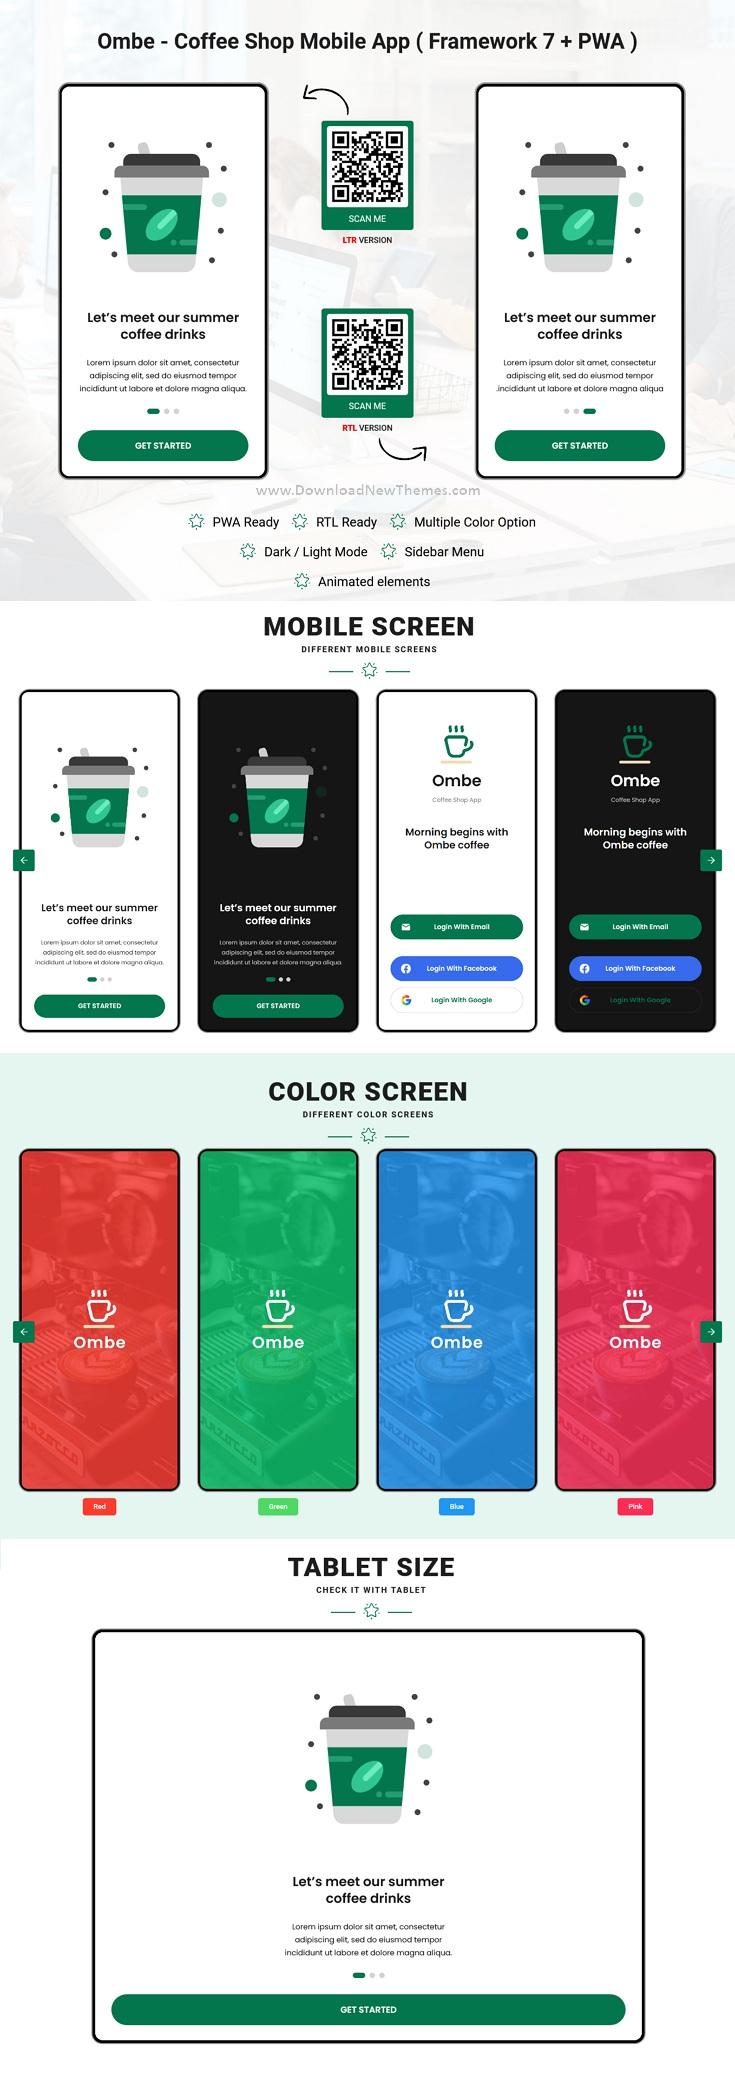 Ombe - Coffee Shop Mobile App Template